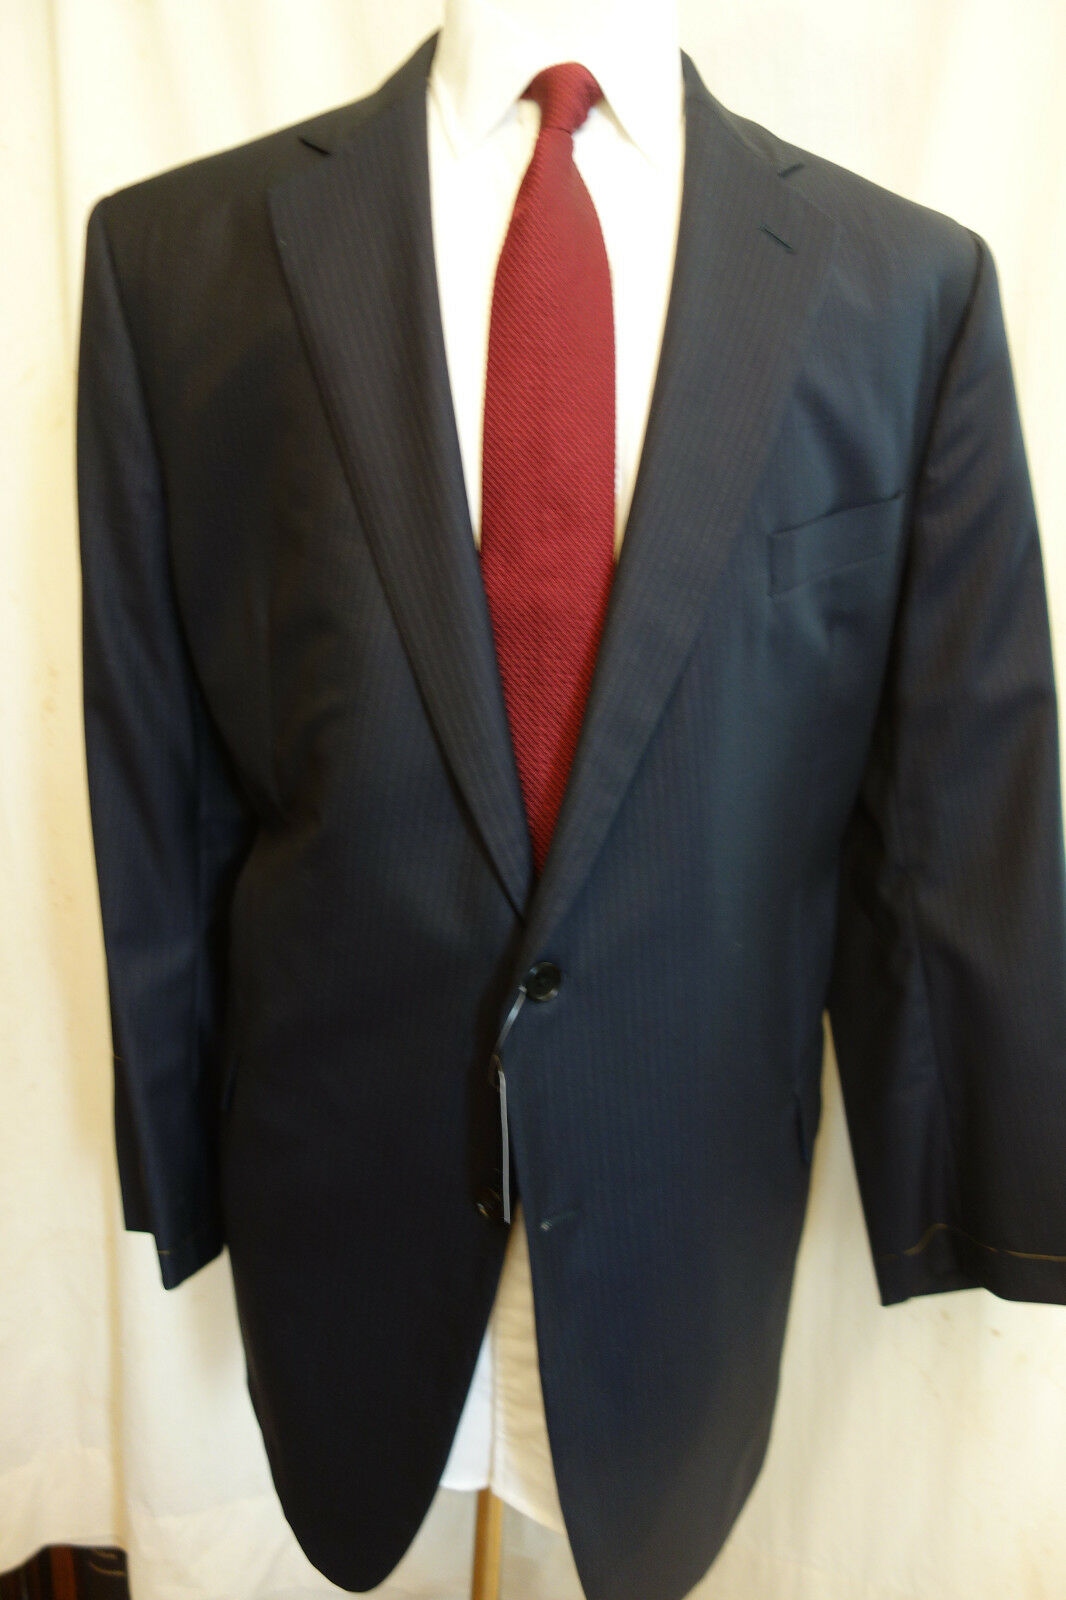 NWOT Brooks Brothers Golden Fleece Blau Pinstripe Sport Coat 46L